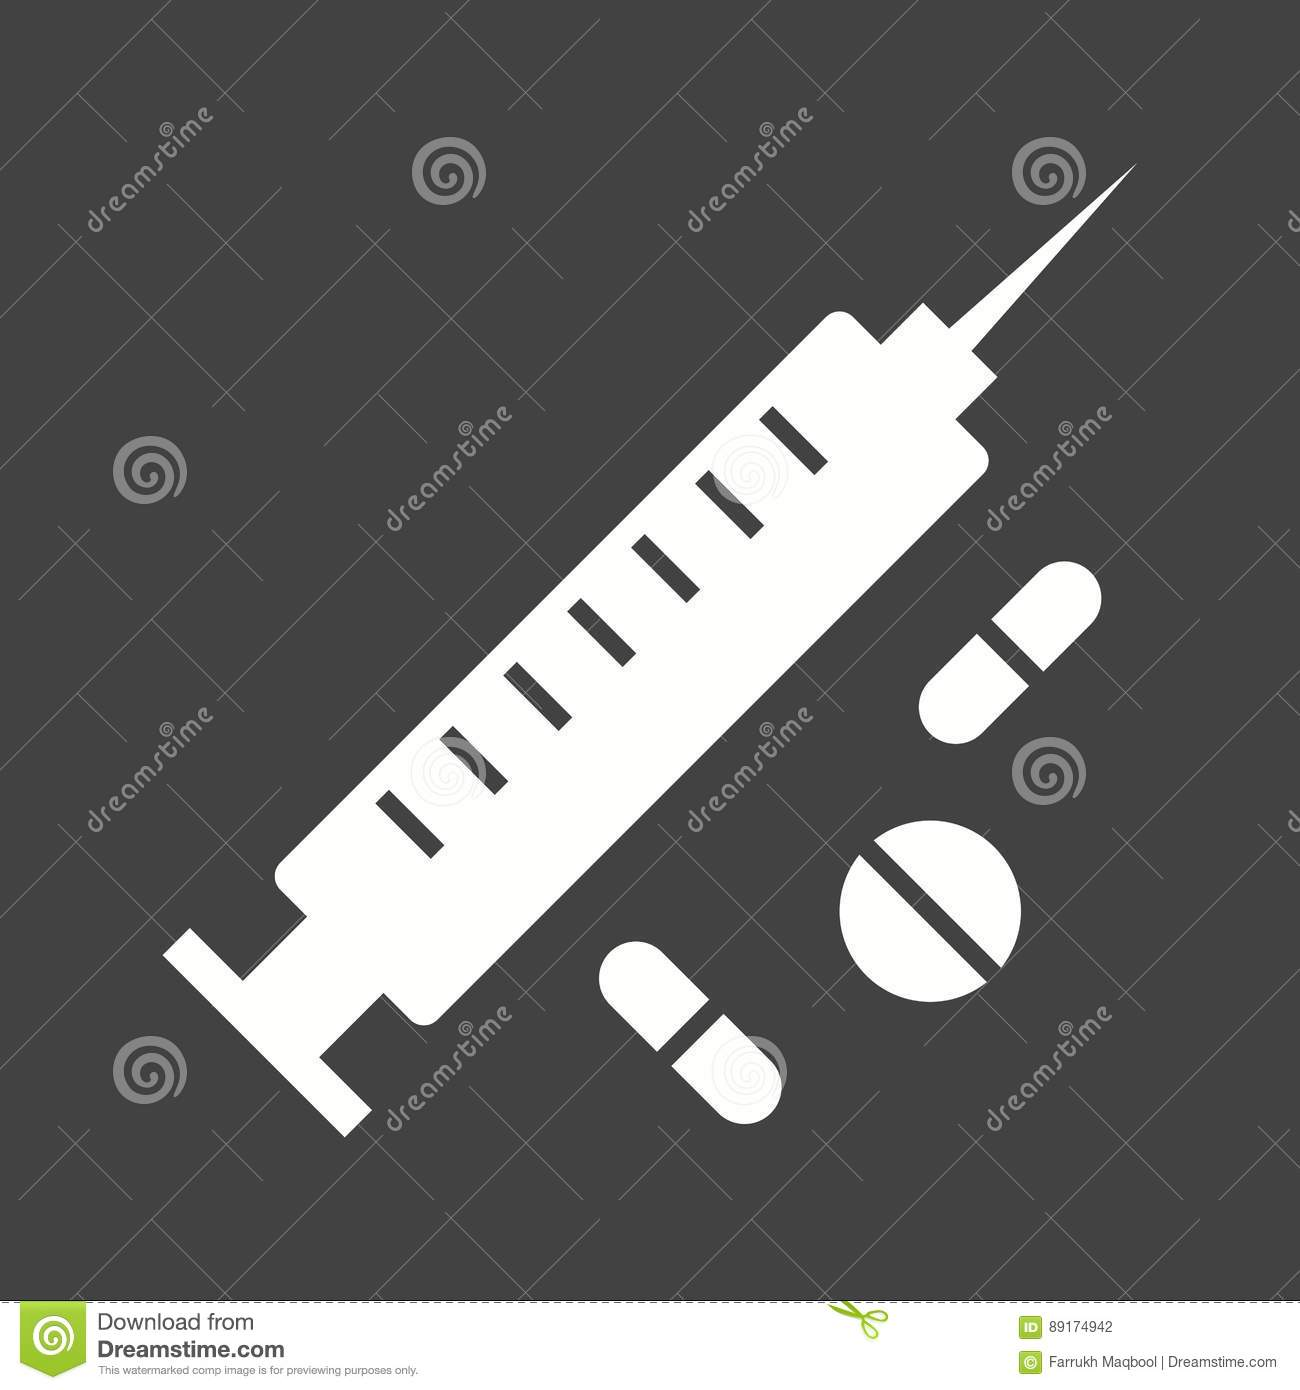 Steroids stock vector. Illustration of tablet, athletic